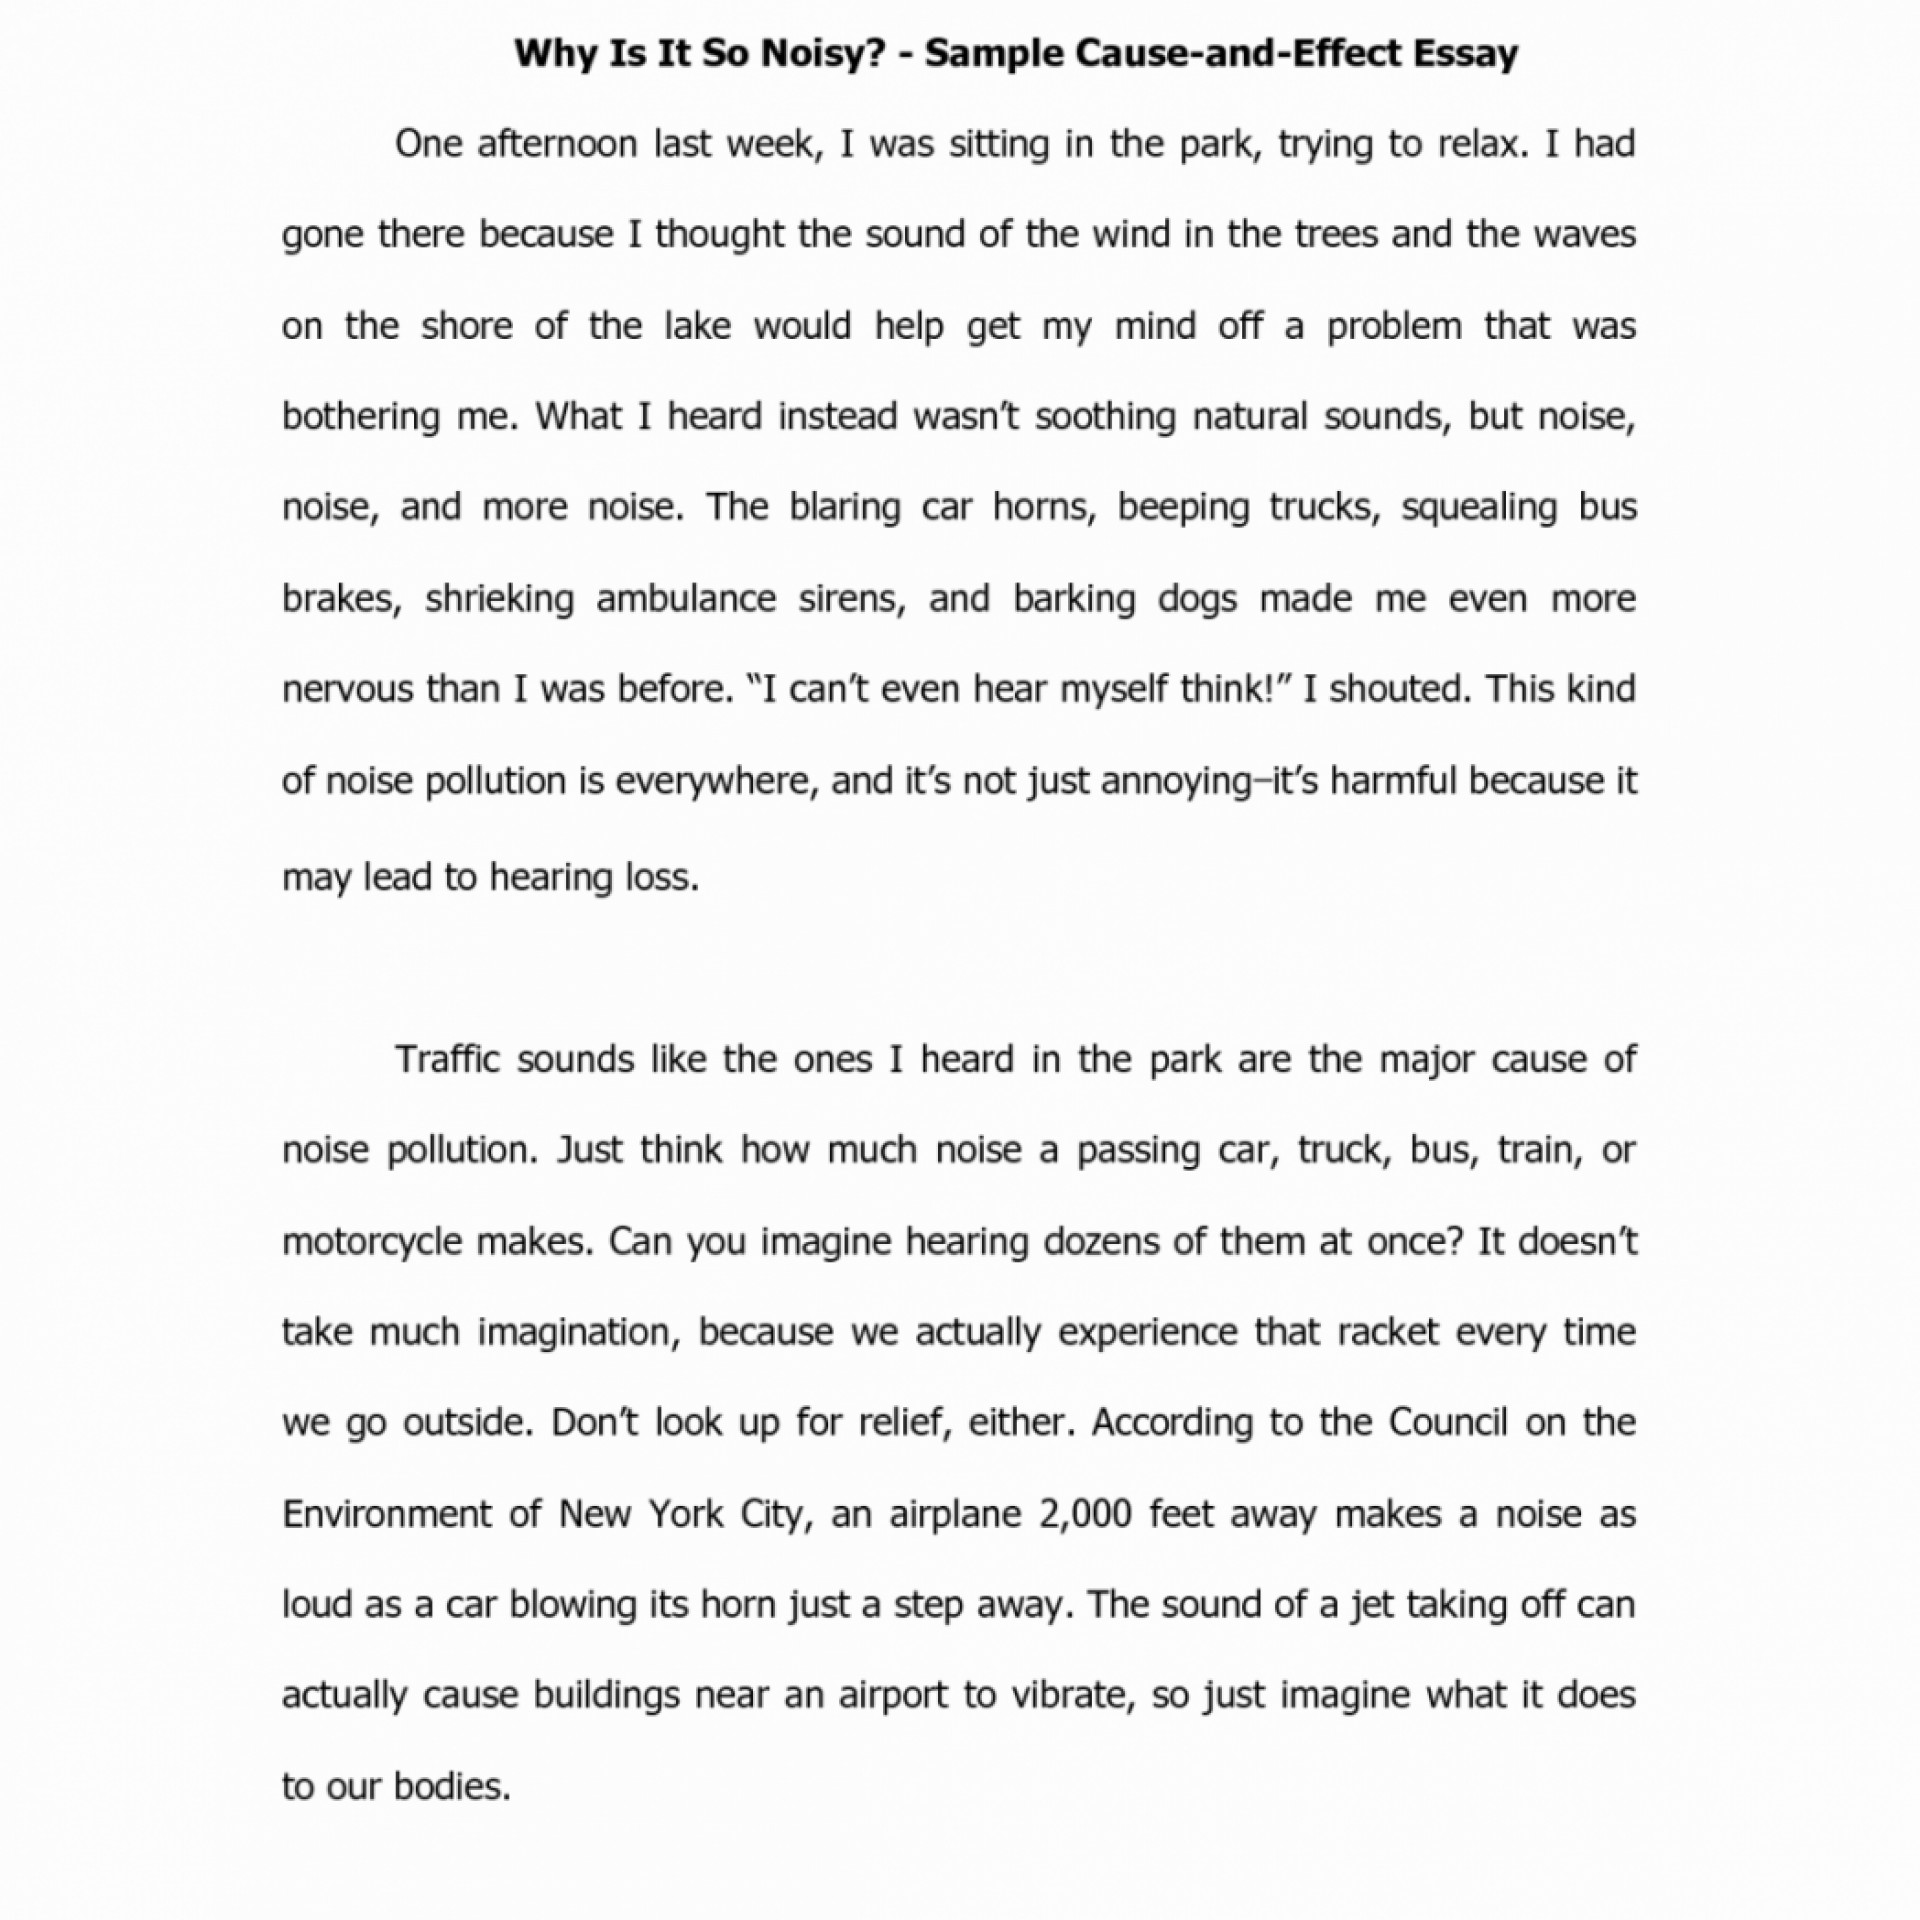 027 Cause And Effect Essays Format Best Of For Or Good Cover Bystander Domino Analysis Ielts Free 6th Grade College Pdf Middle School 1048x1048 Amazing Essay Examples Writing On Stress 1920